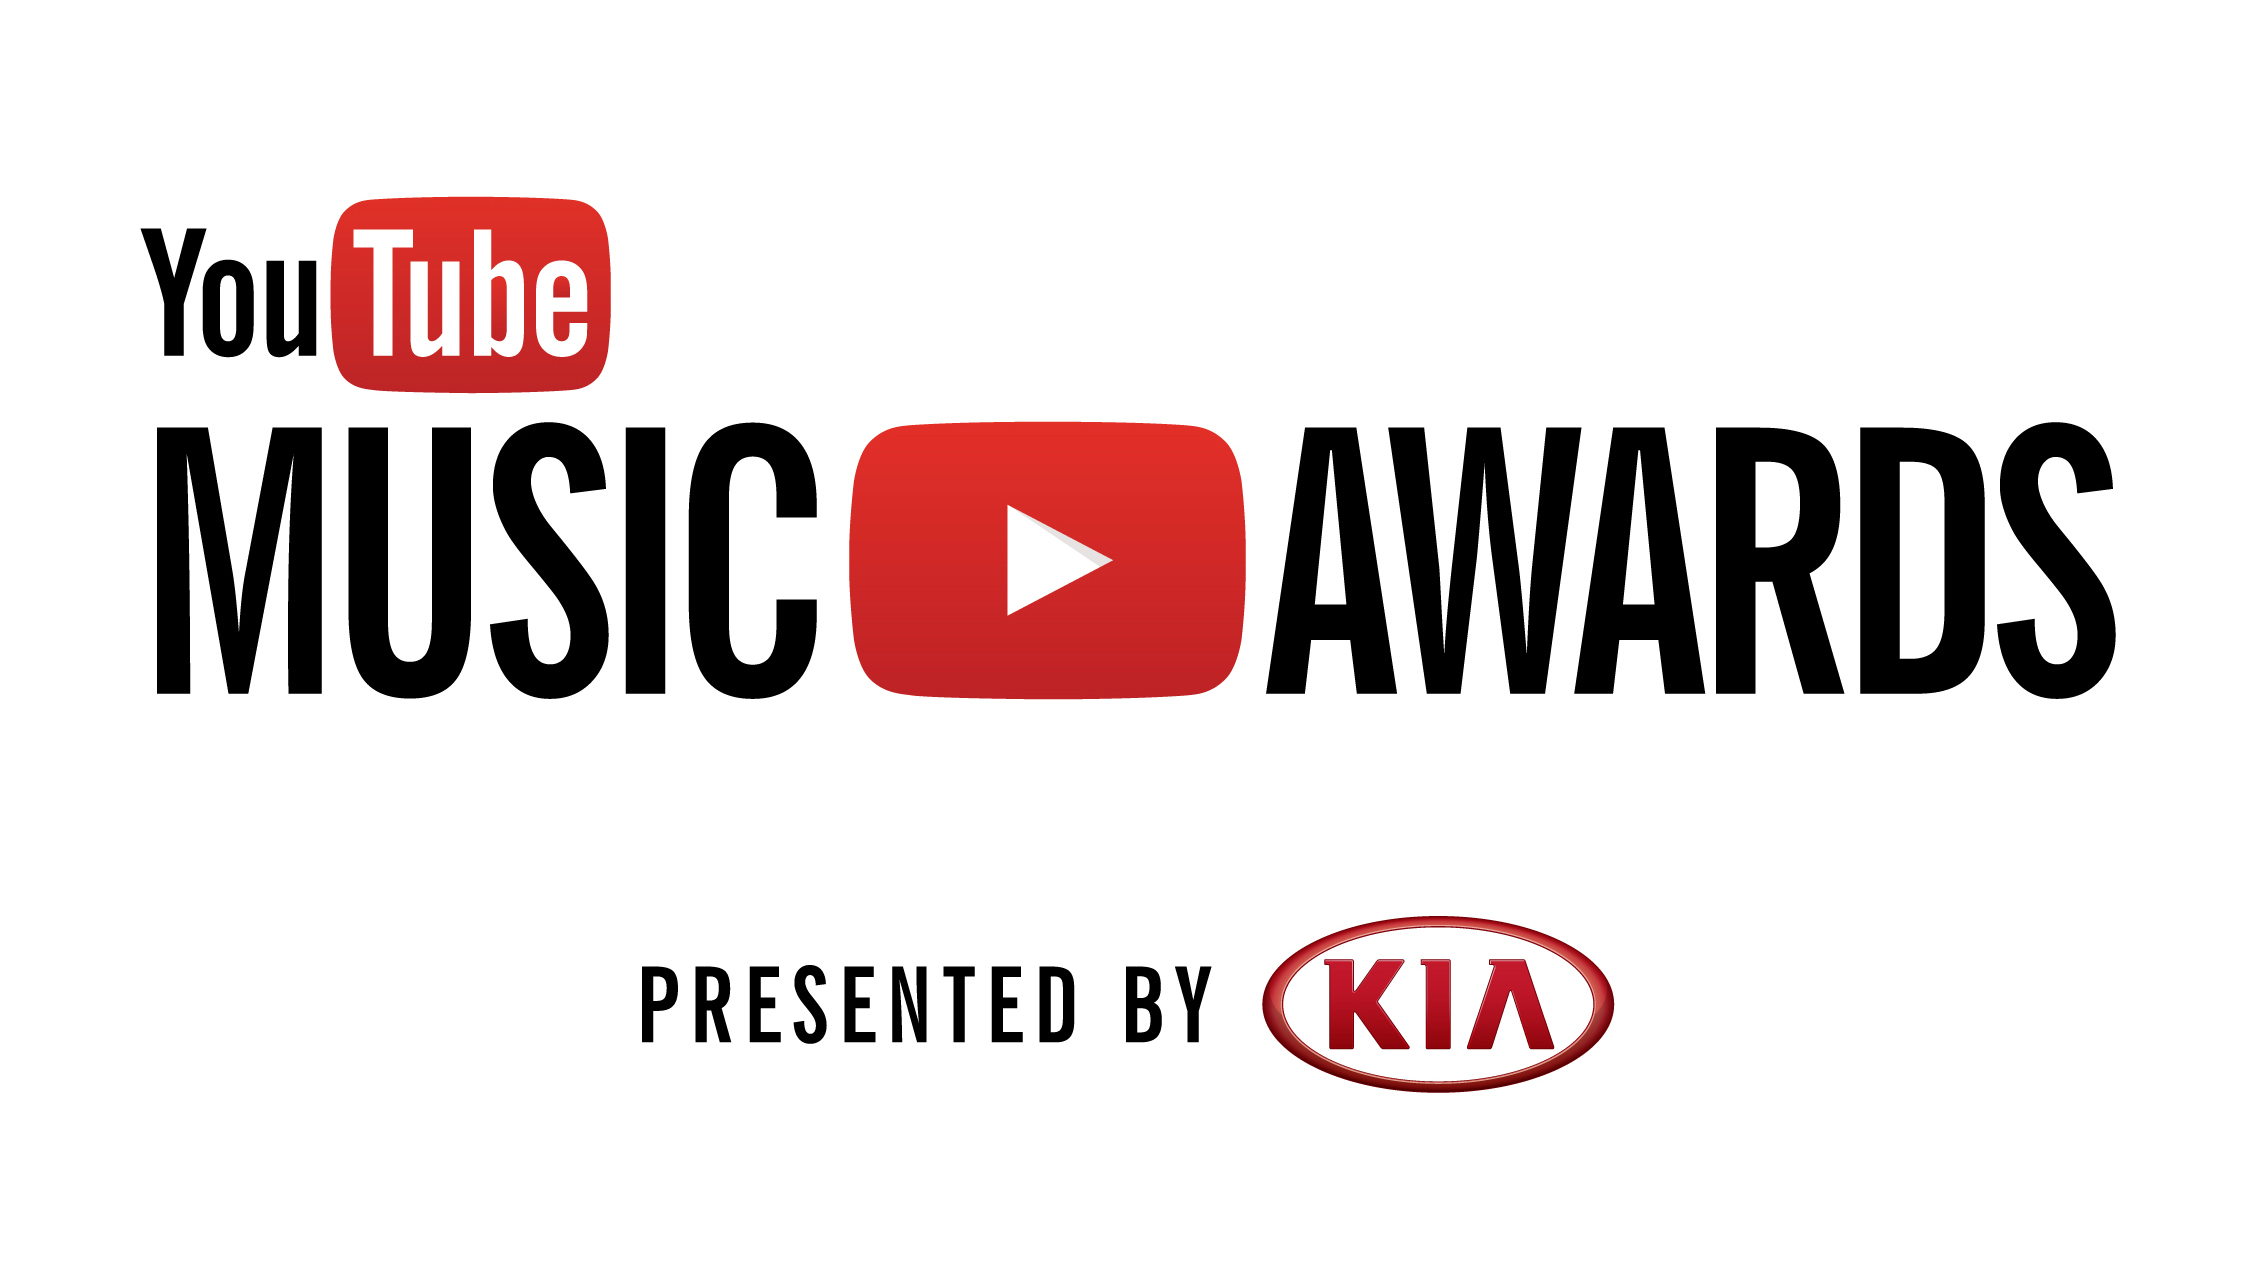 YouTube Awards: THE WINNERS [List]